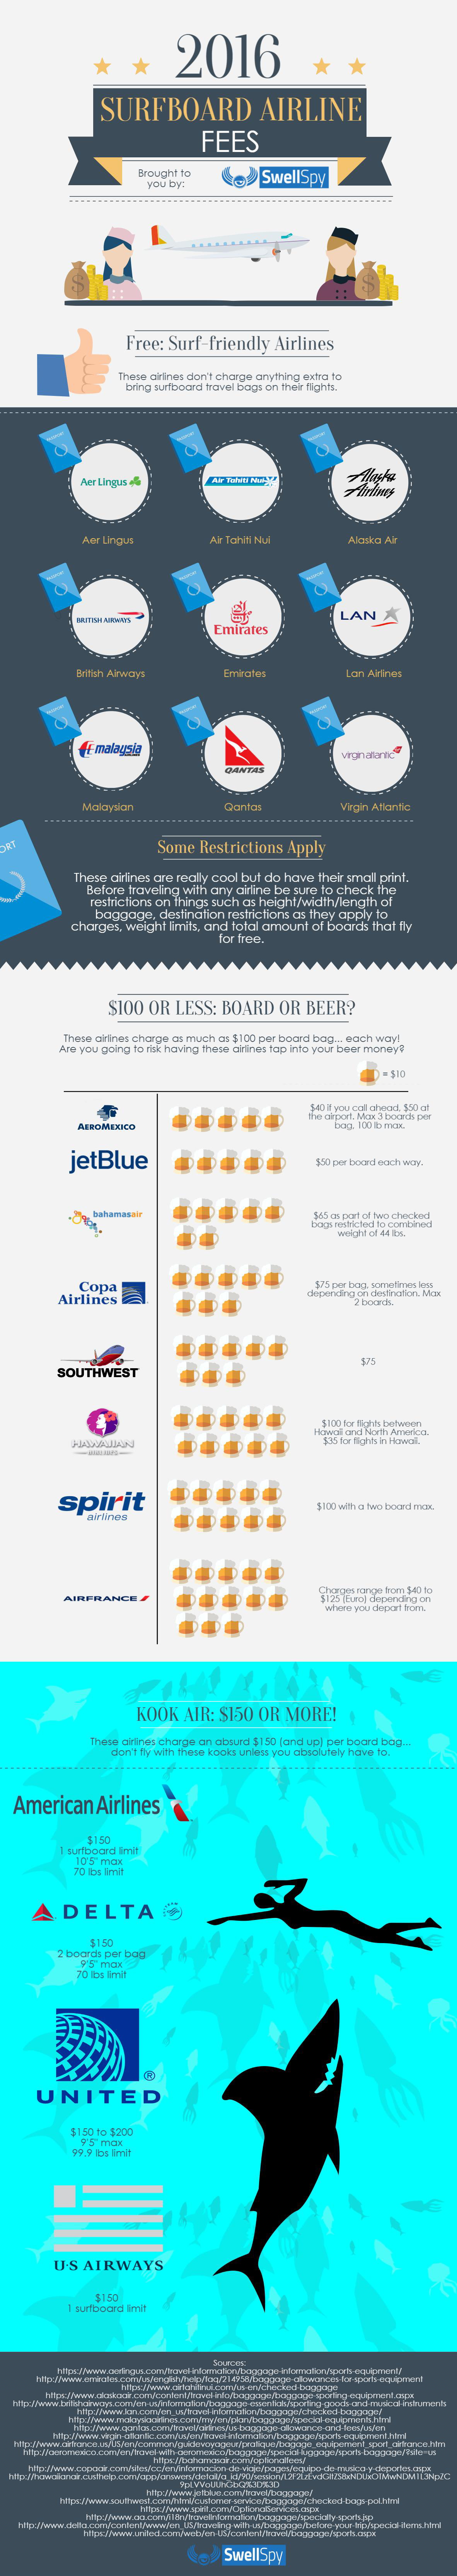 2016 Surfboard Airline Fees